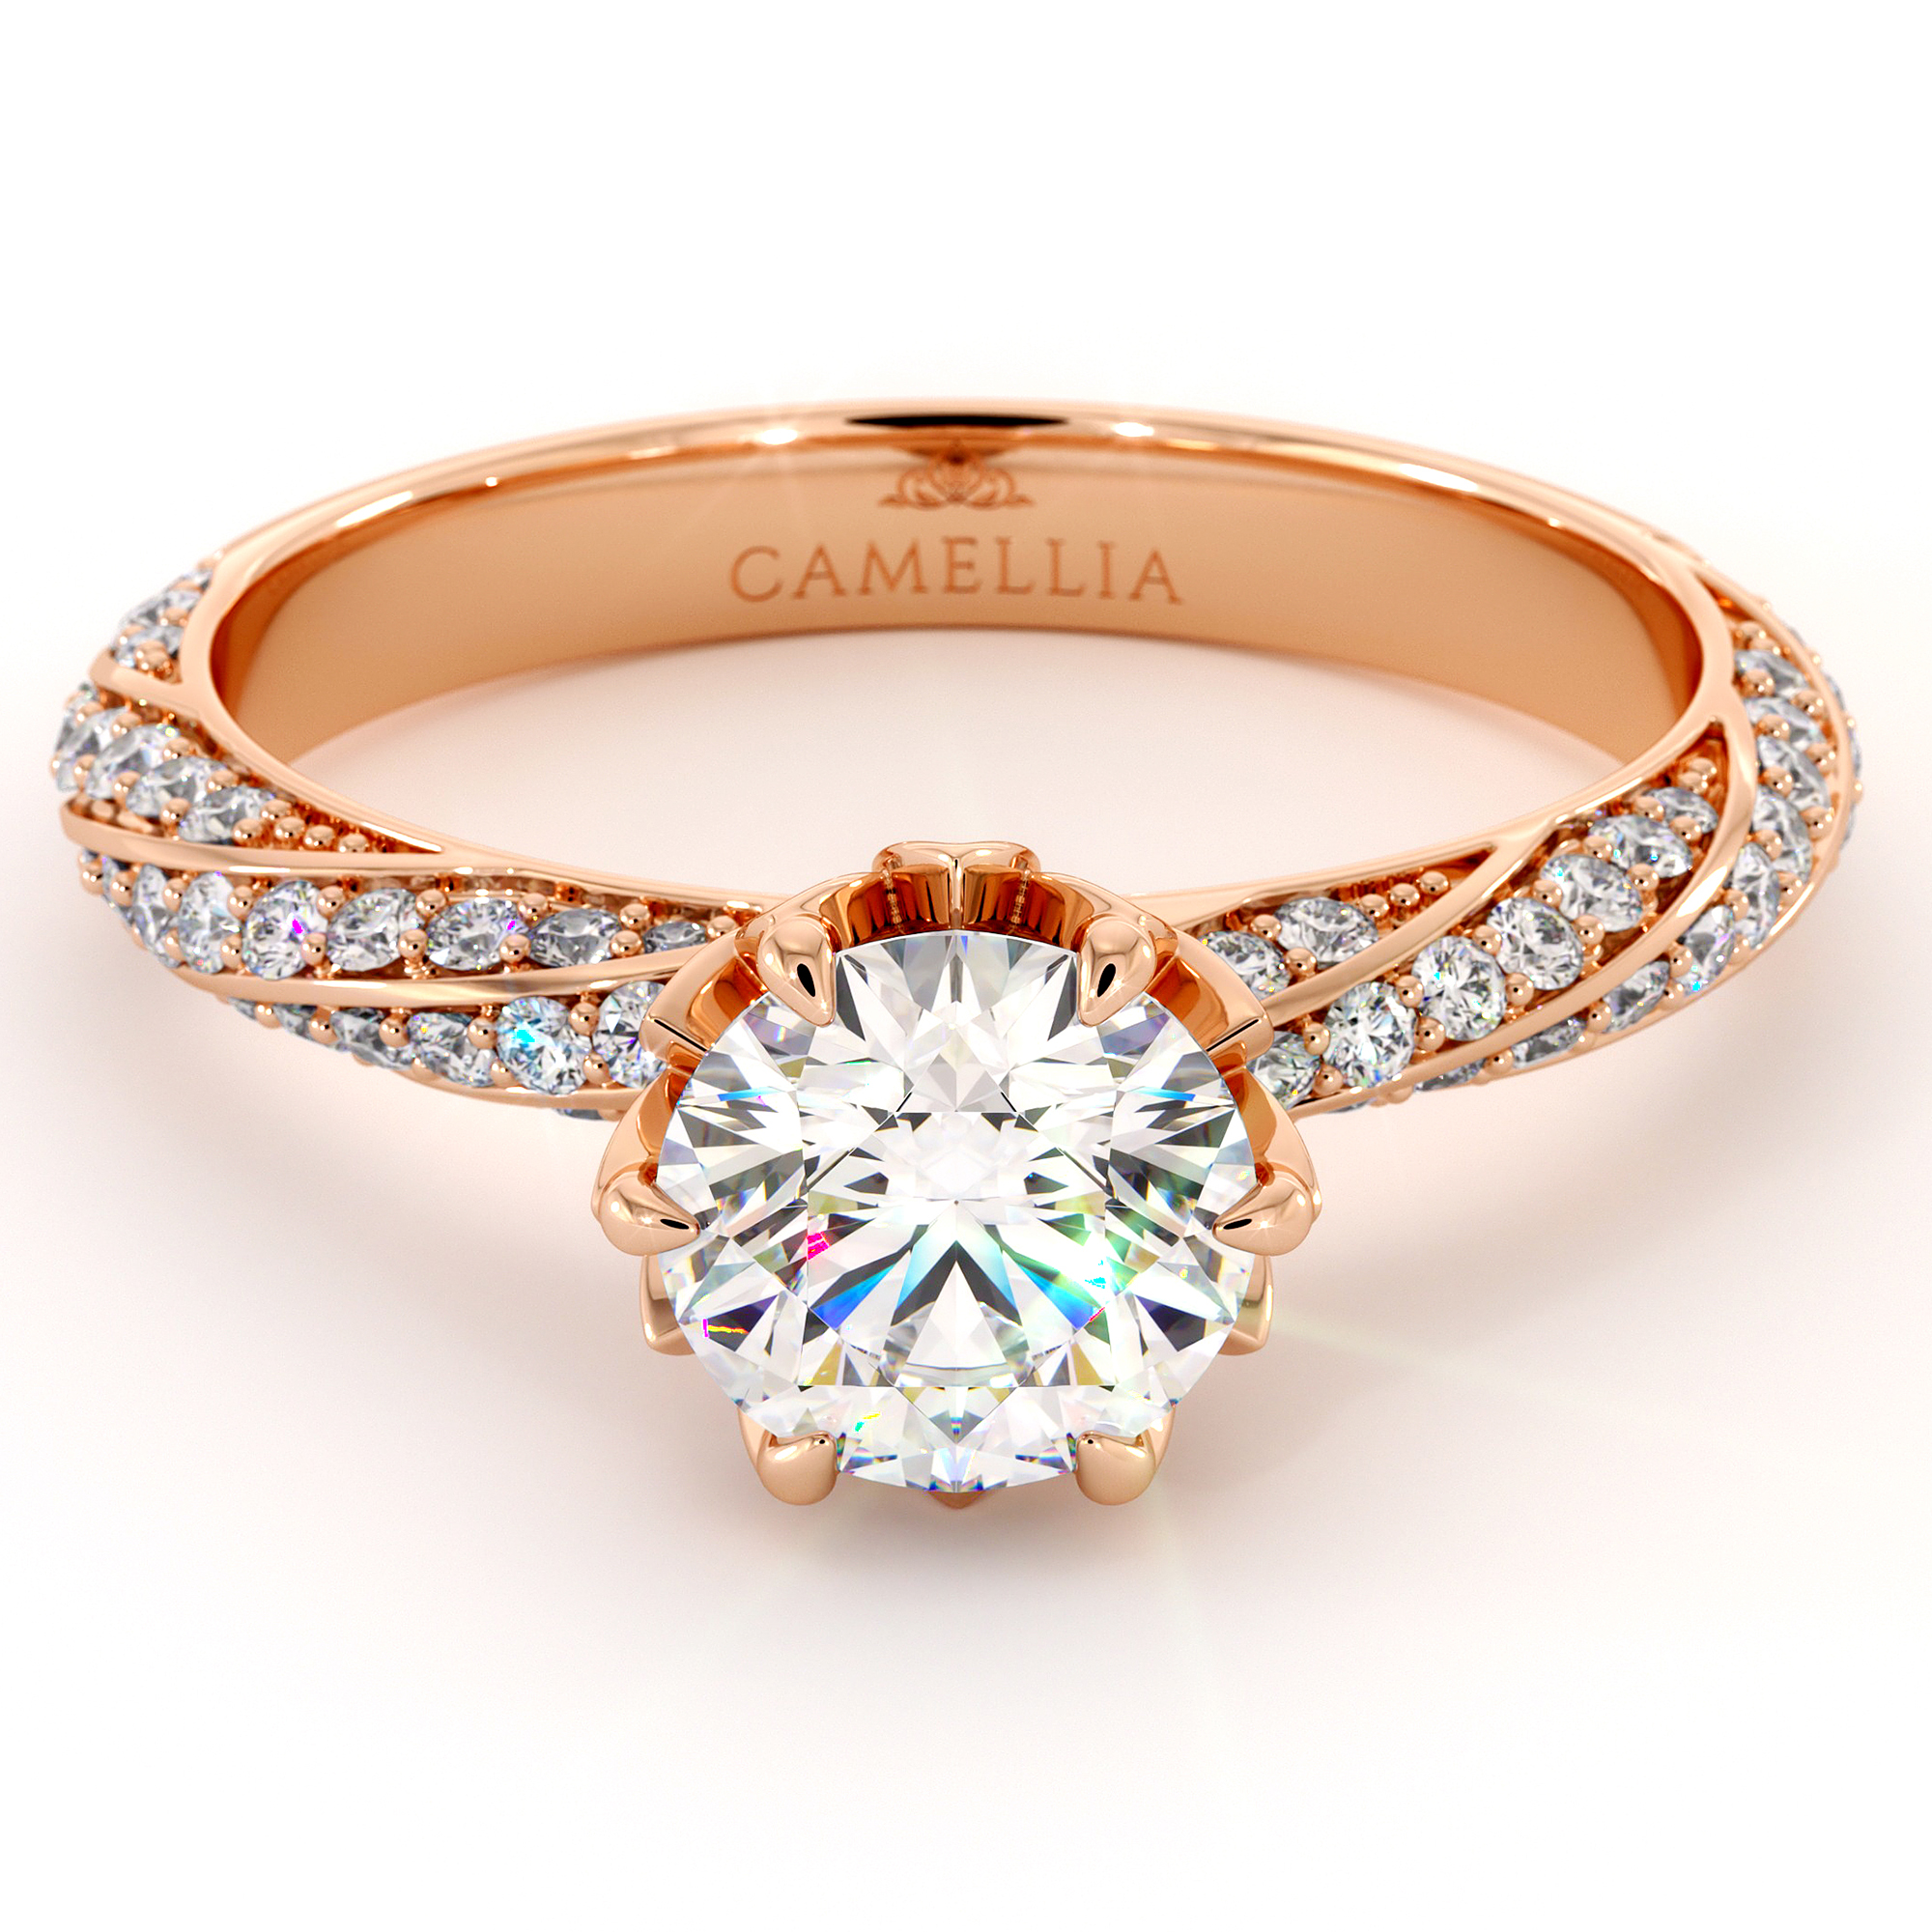 Classic Twisted Natural Diamonds Engagement Ring Moissanite Center Stone Floral Crown Ring